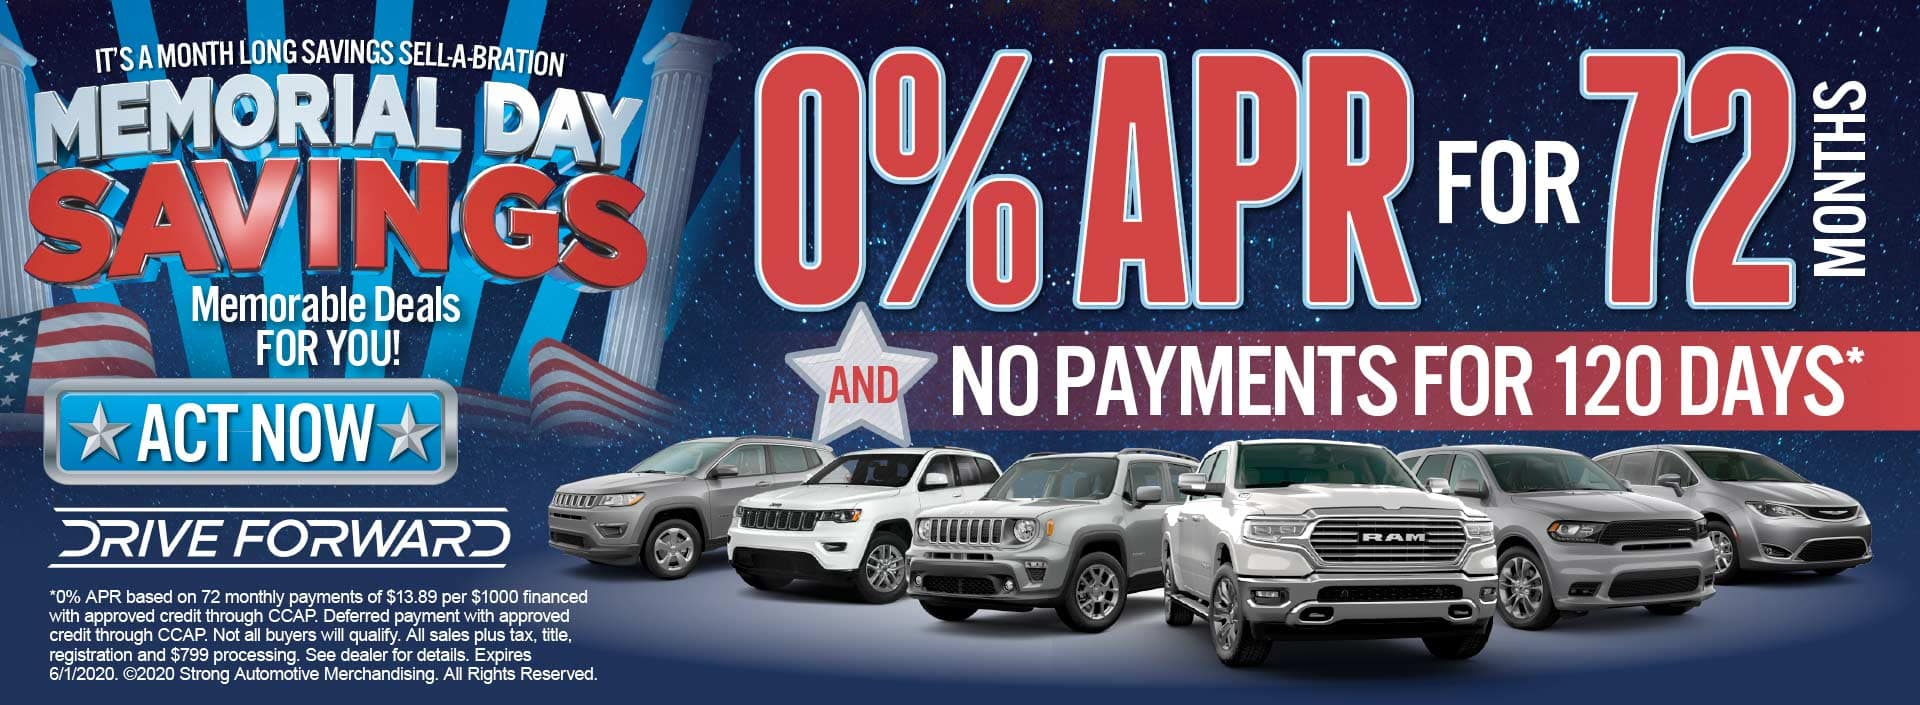 0% for 72 months and no payments for 120 days* act now